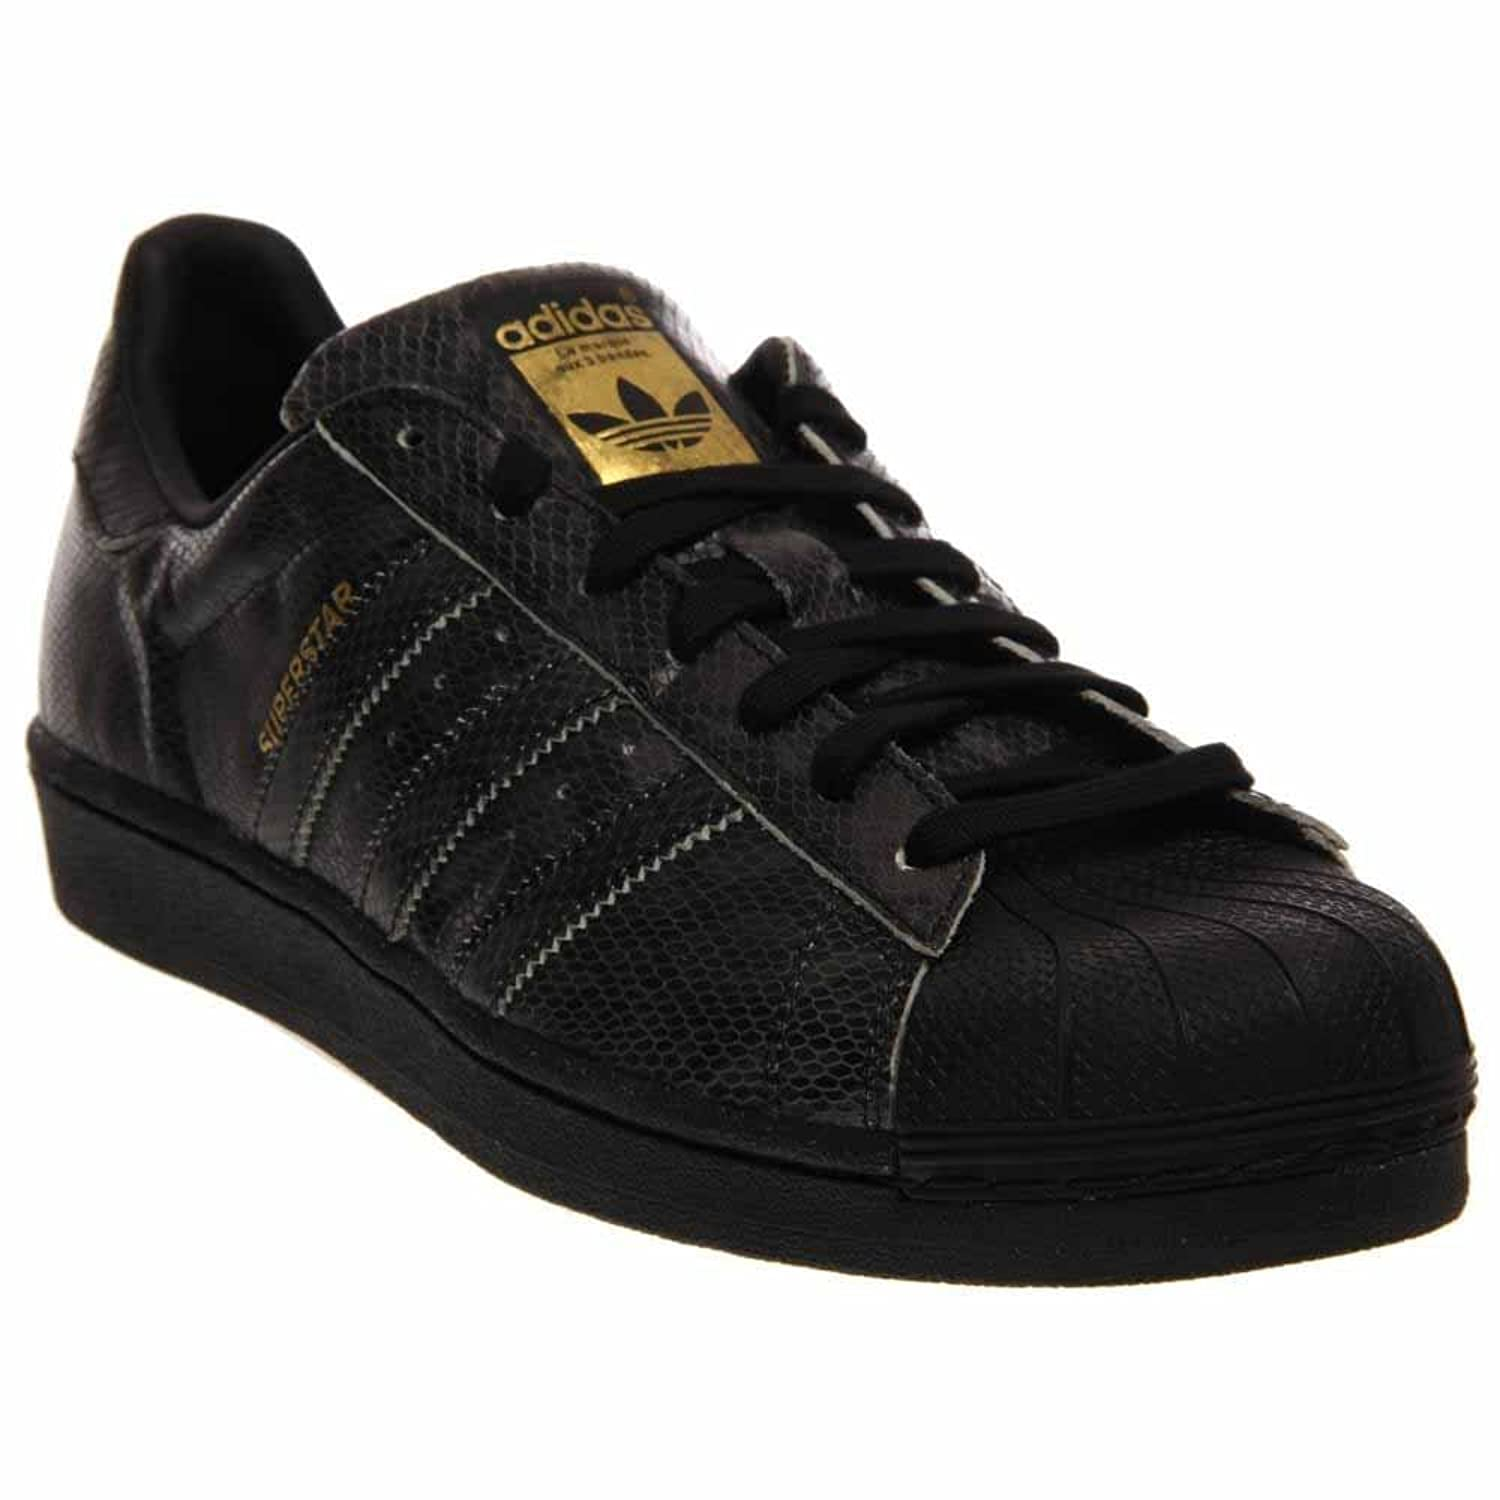 separation shoes df0ac d9f31 ... get amazon adidas superstar east river rivalry mens basketball shoes  b34376 core black core black gold